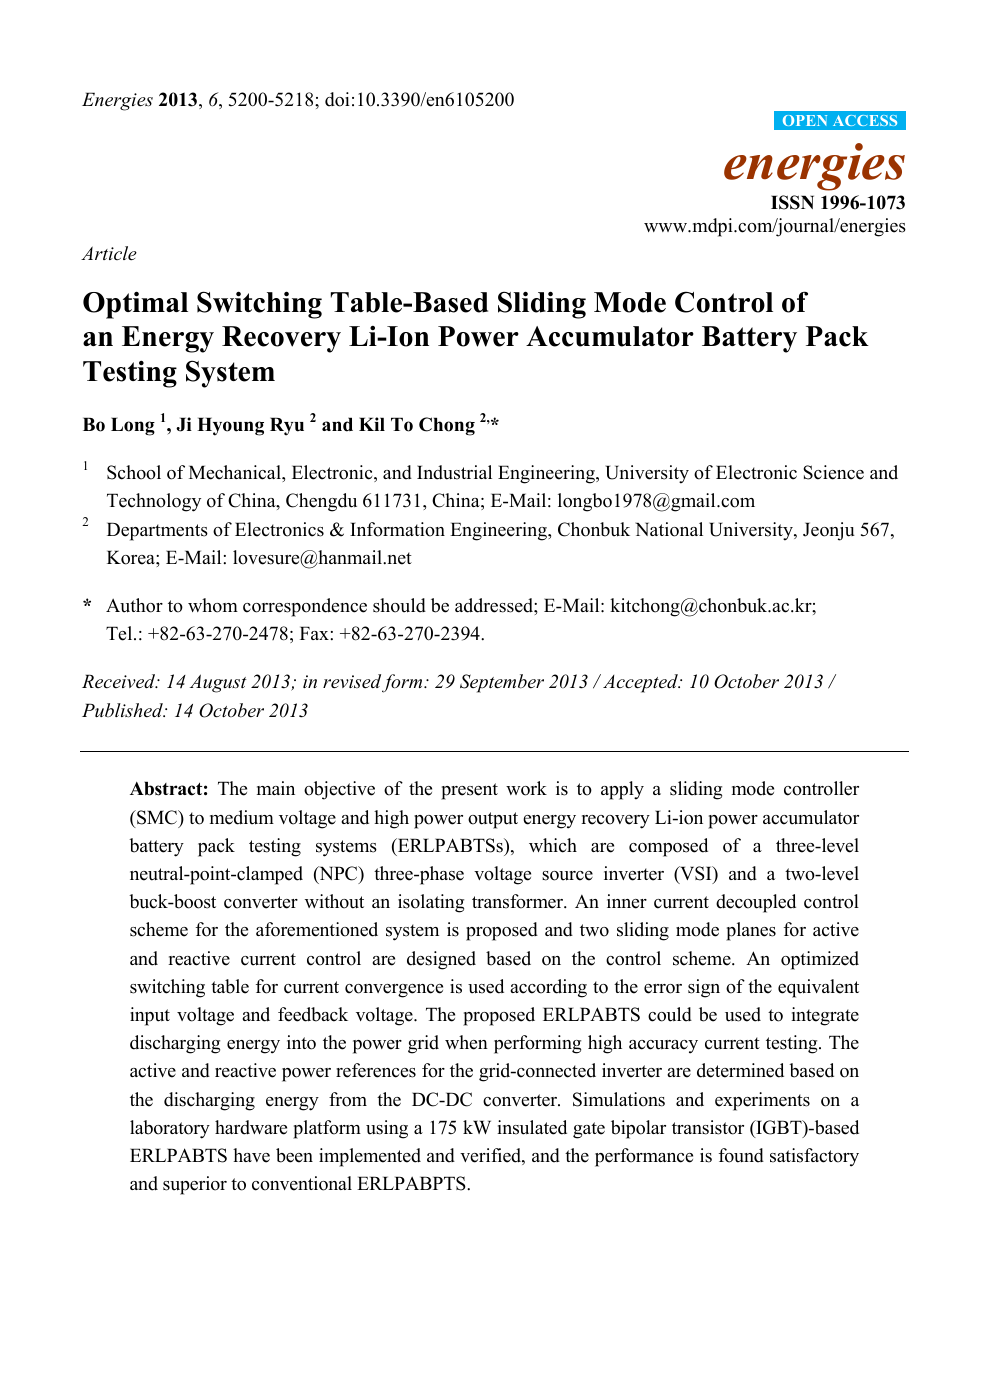 Optimal Switching Table-Based Sliding Mode Control of an